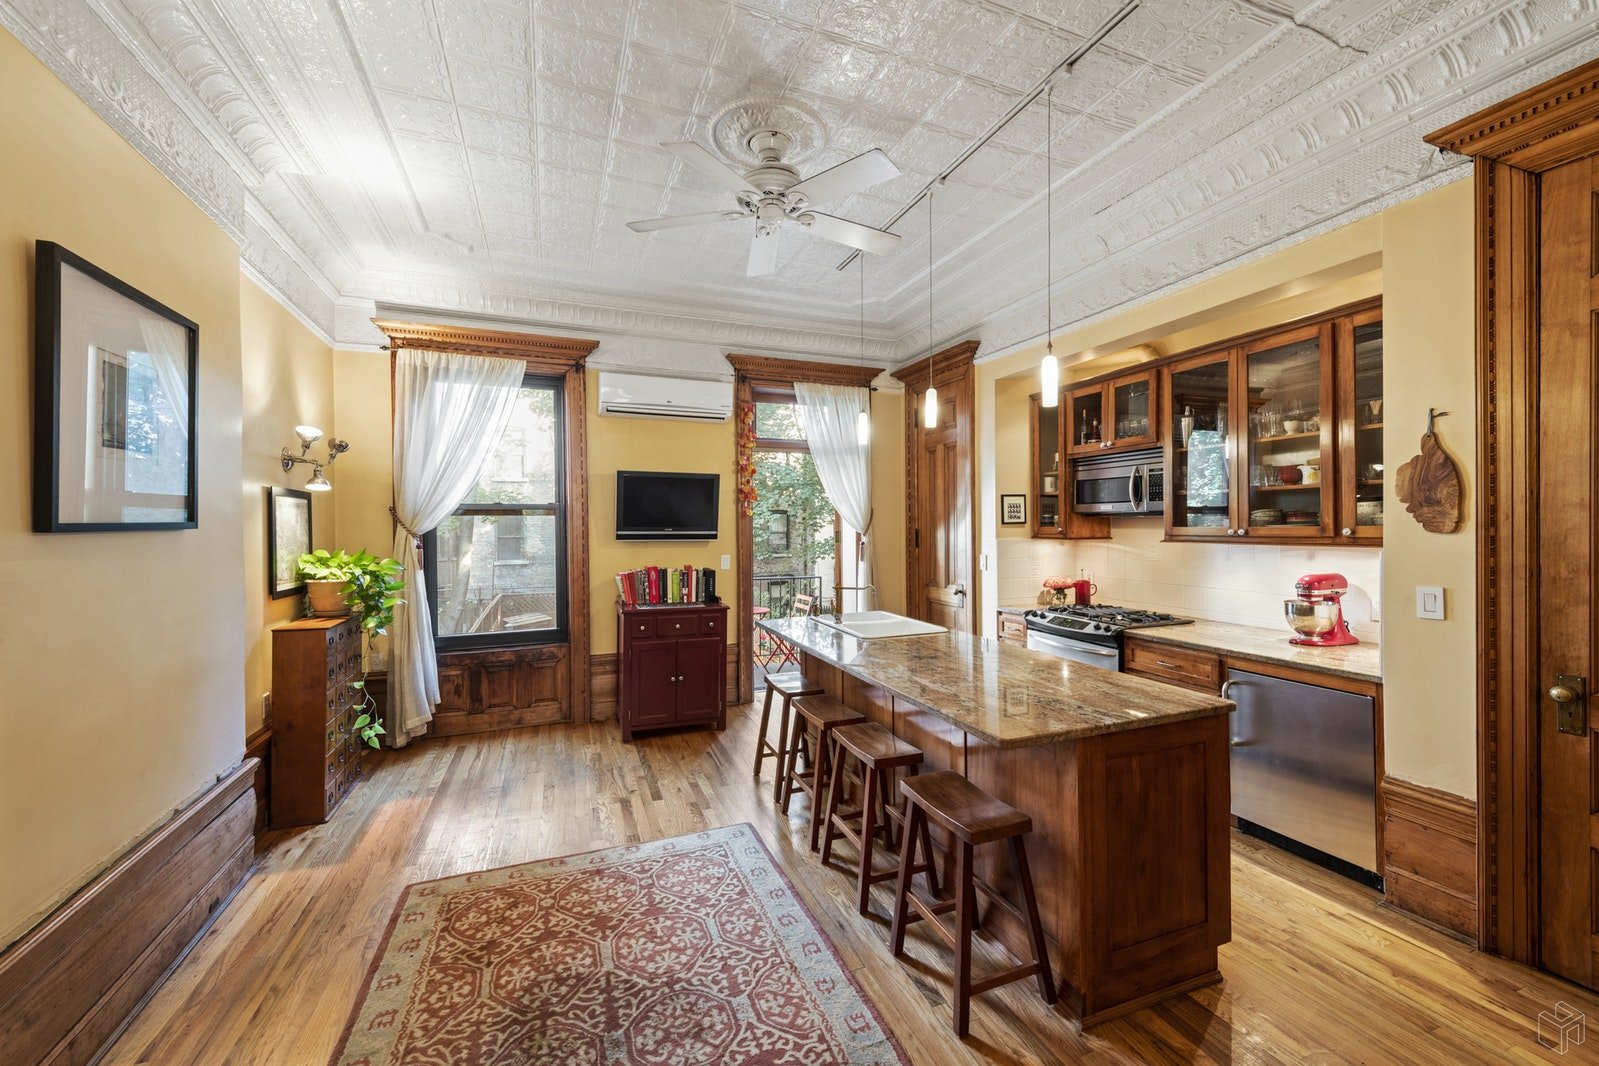 Illustrious Hamilton Heights Townhouse, Upper Manhattan, NYC, 10032, $2,795,000, Property For Sale, Halstead Real Estate, Photo 5